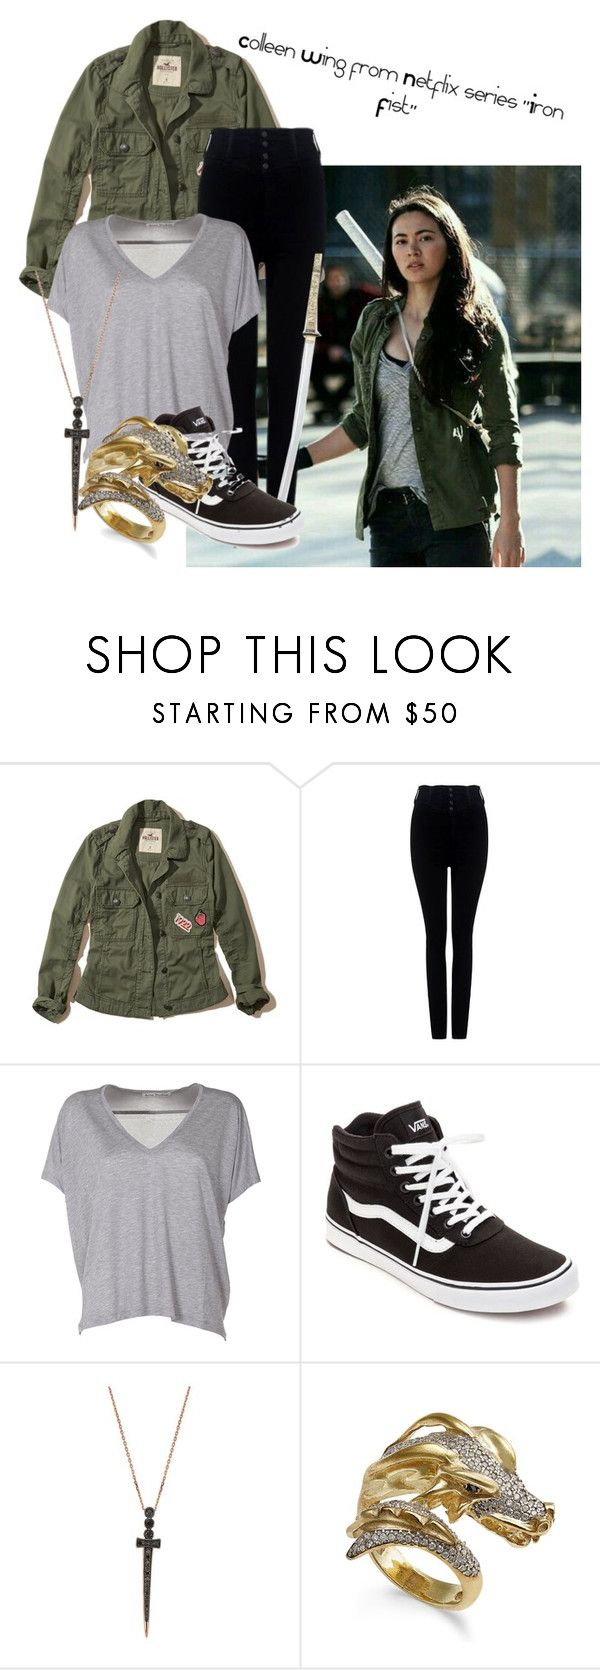 """""""Colleen Wing- Iron Fist series"""" by claudialogan ❤ liked on Polyvore featuring Hollister Co., Citizens of Humanity, Acne Studios, Vans and Bee Goddess"""